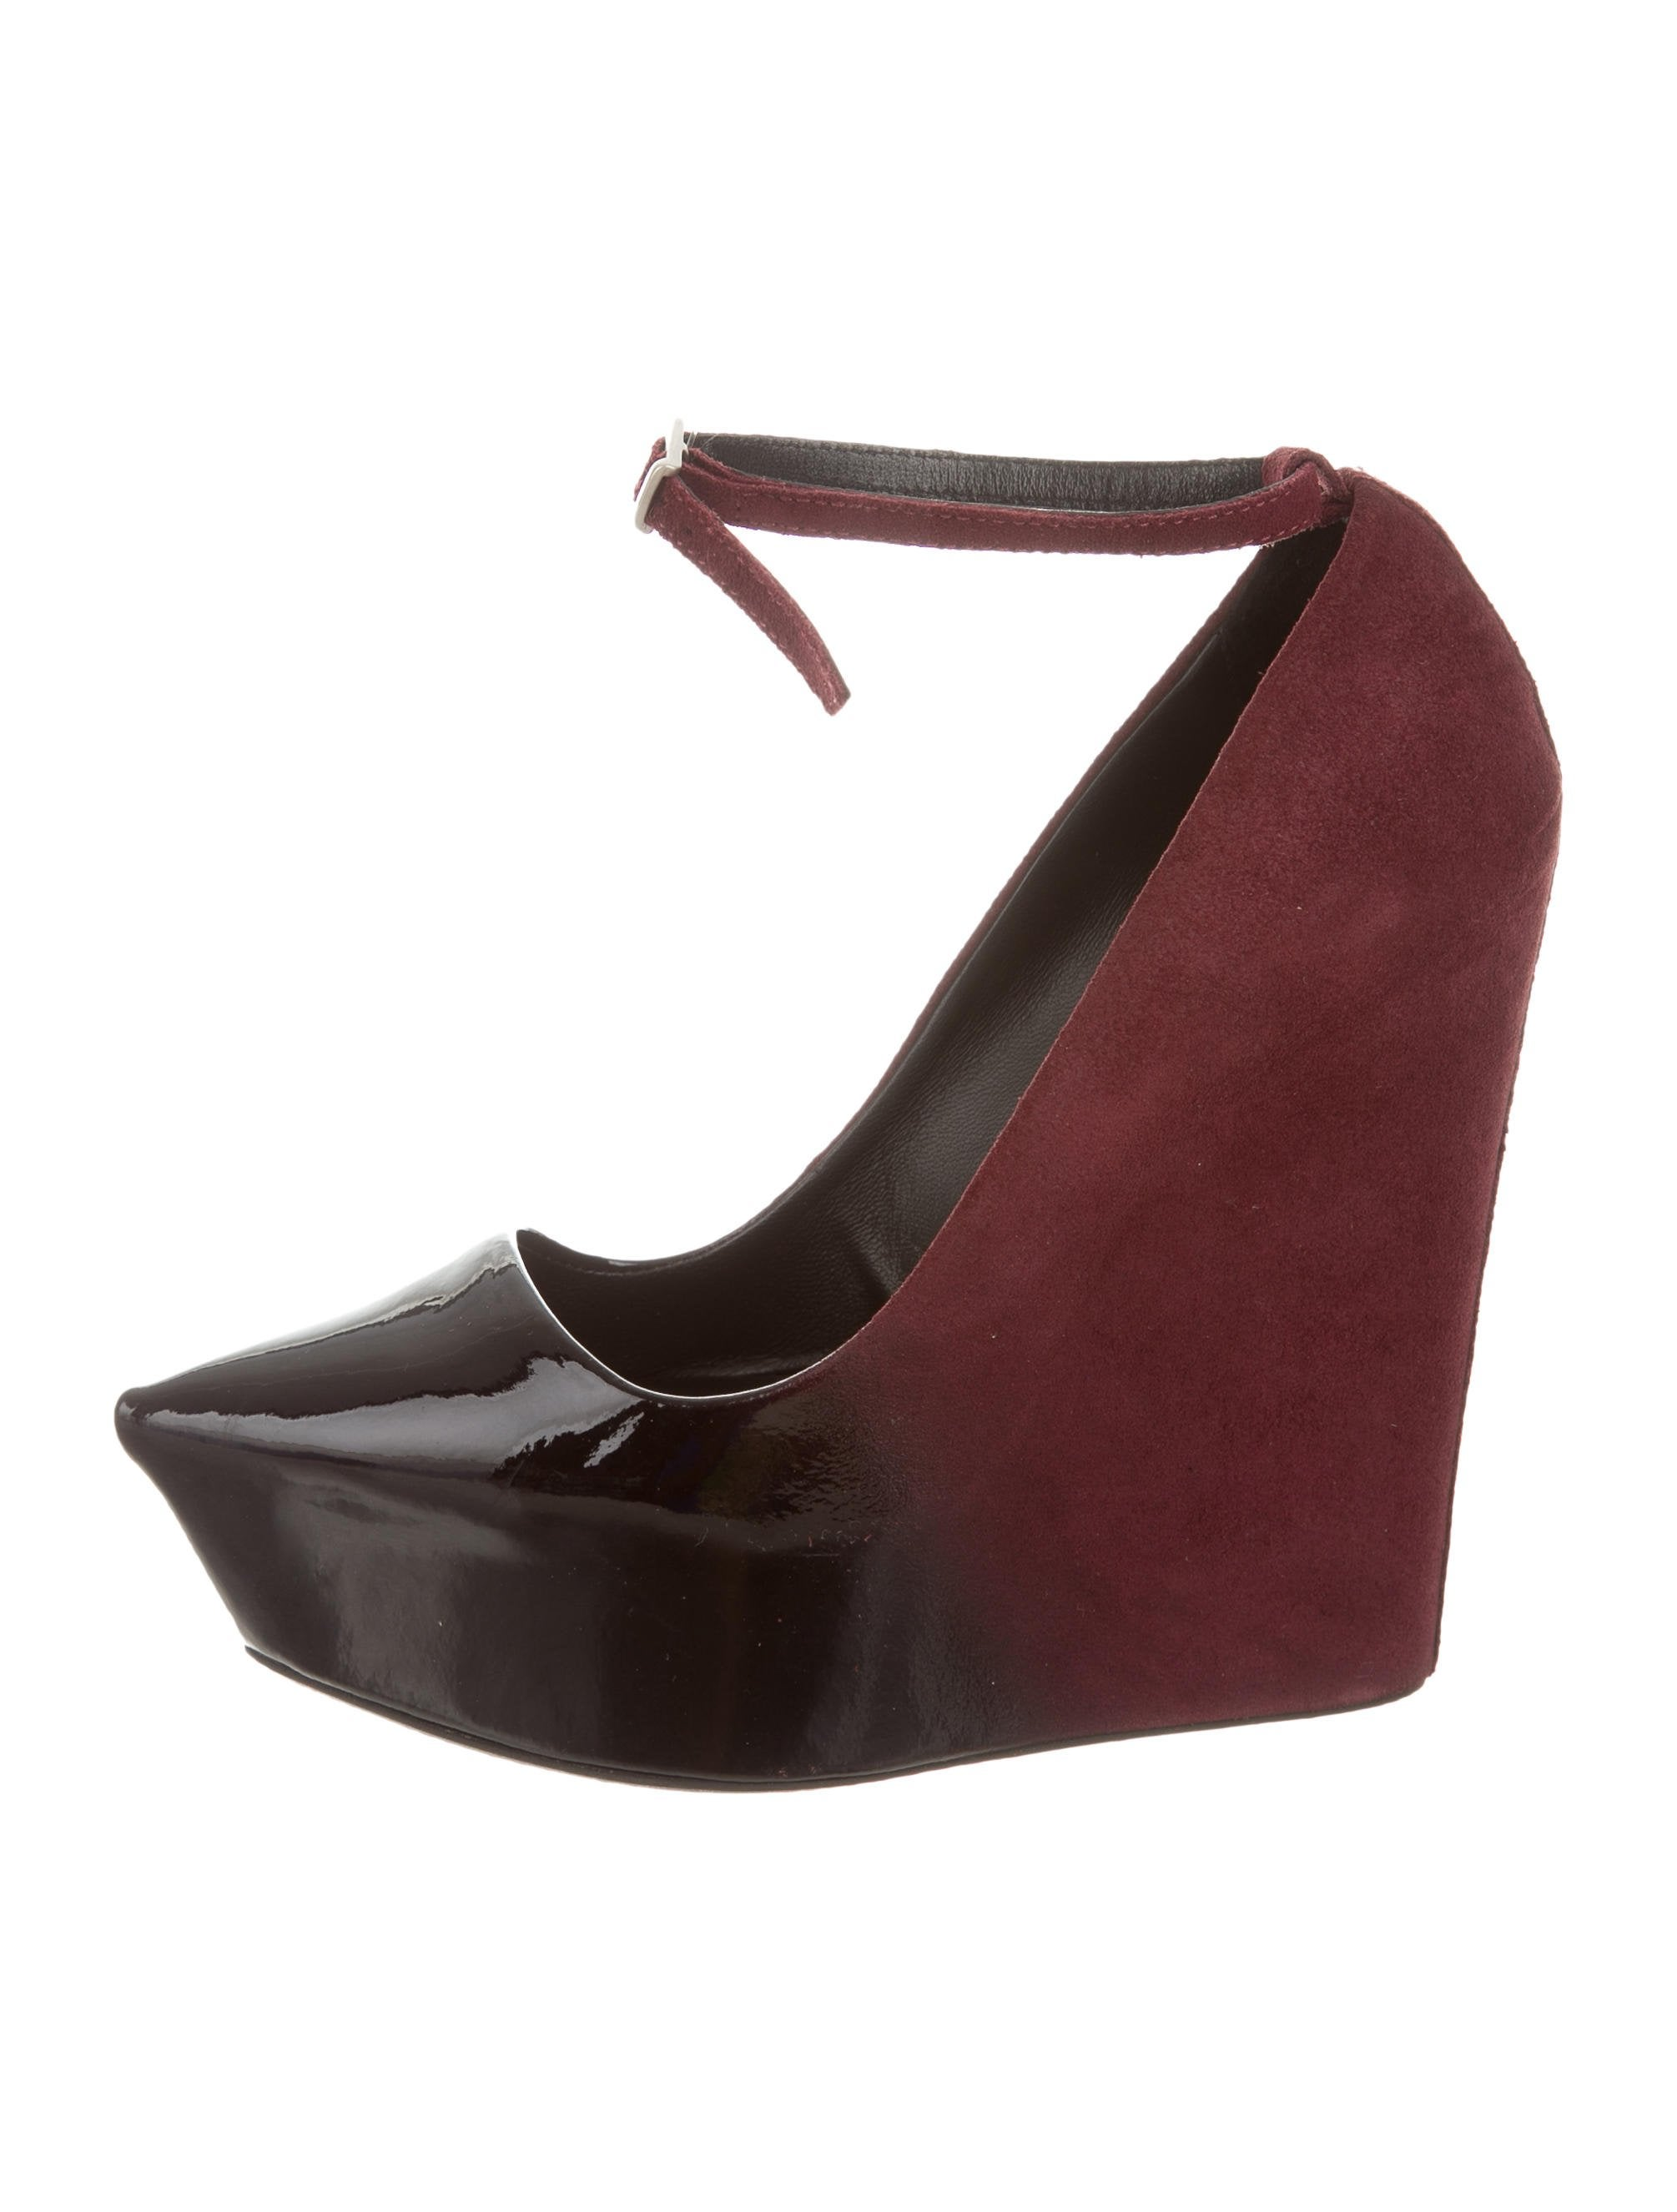 theyskens theory patent leather pointed toe wedges